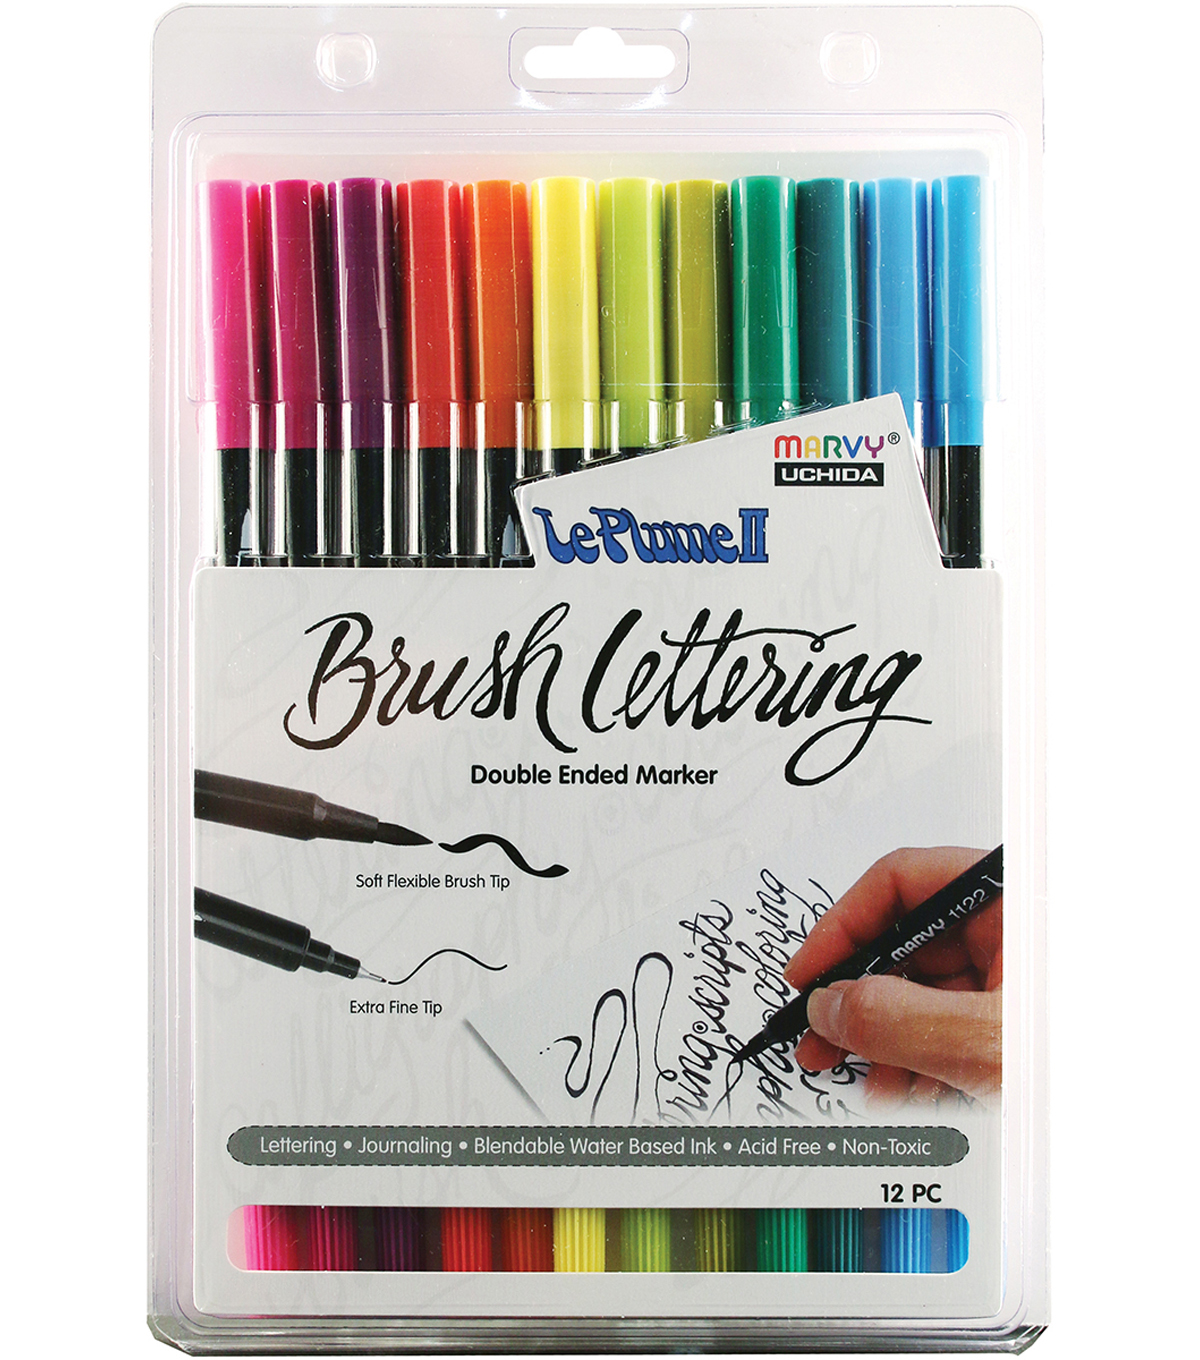 Le Plume II Double-Ended Brush Lettering Marker Set-Bright